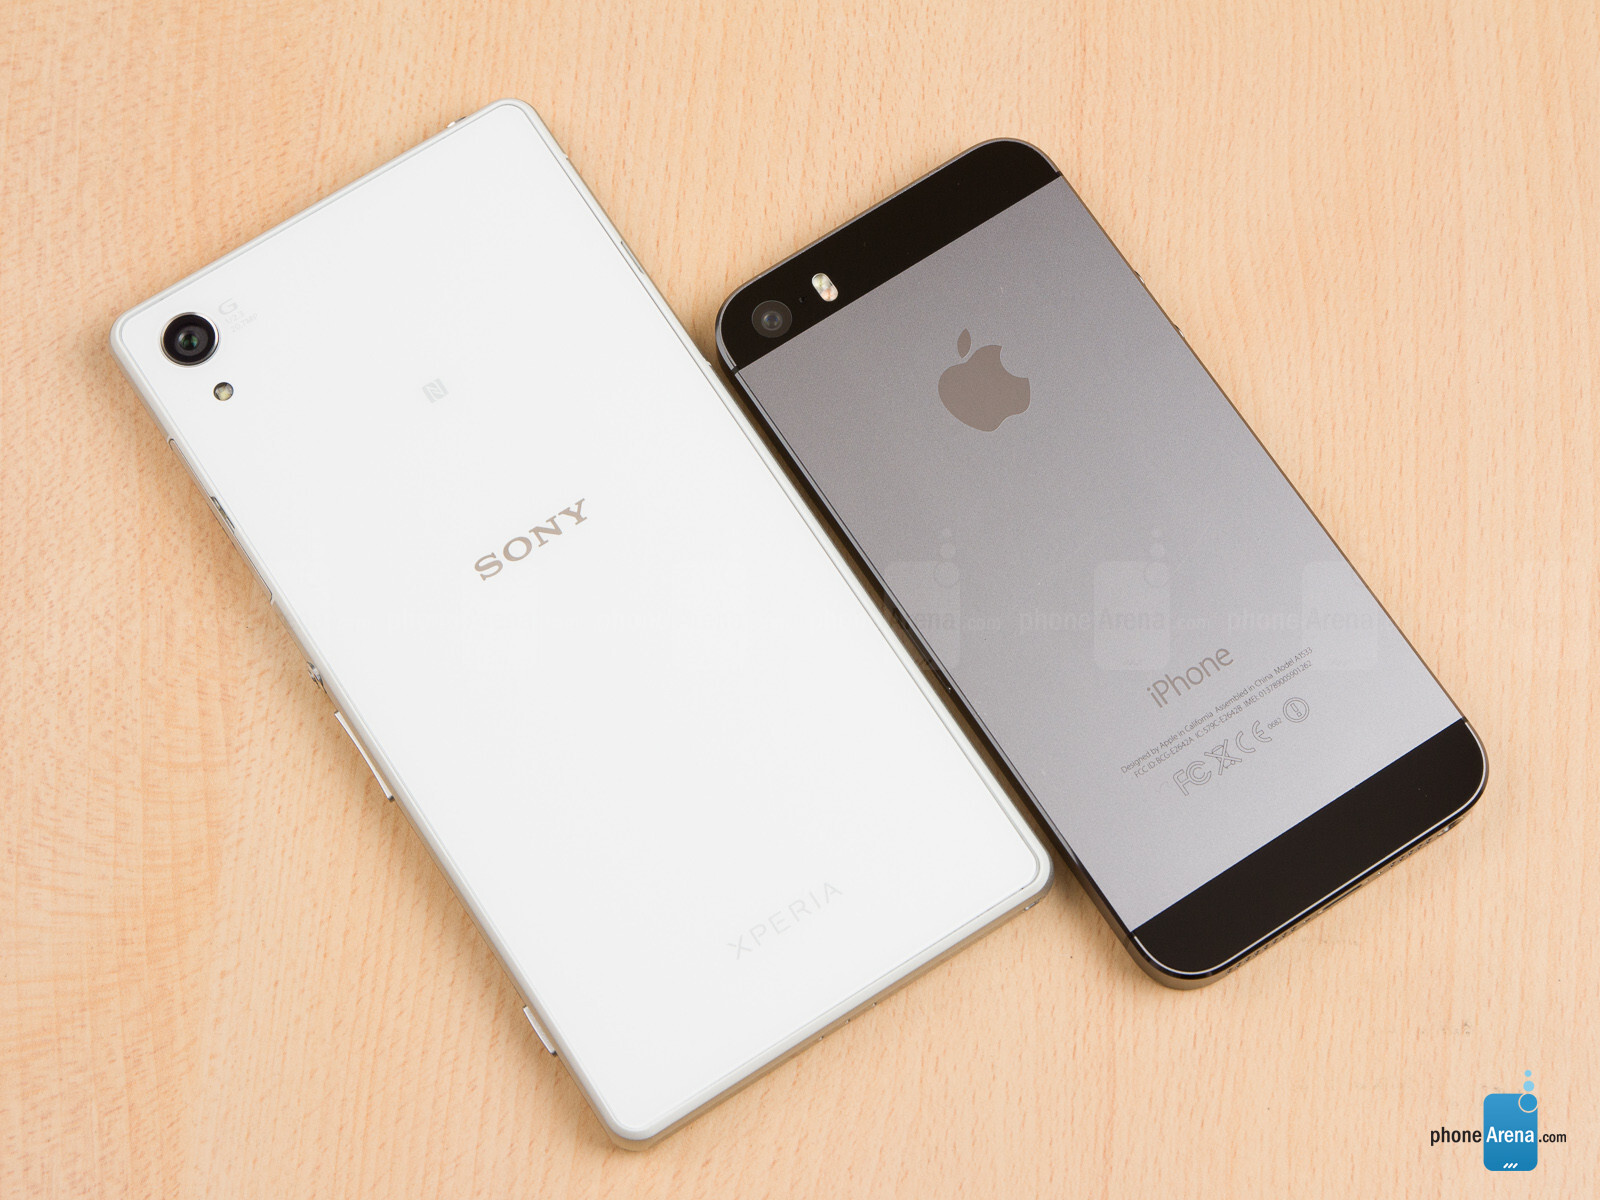 Sony Xperia Z2 vs Apple iPhone 5s - Call Quality, Battery